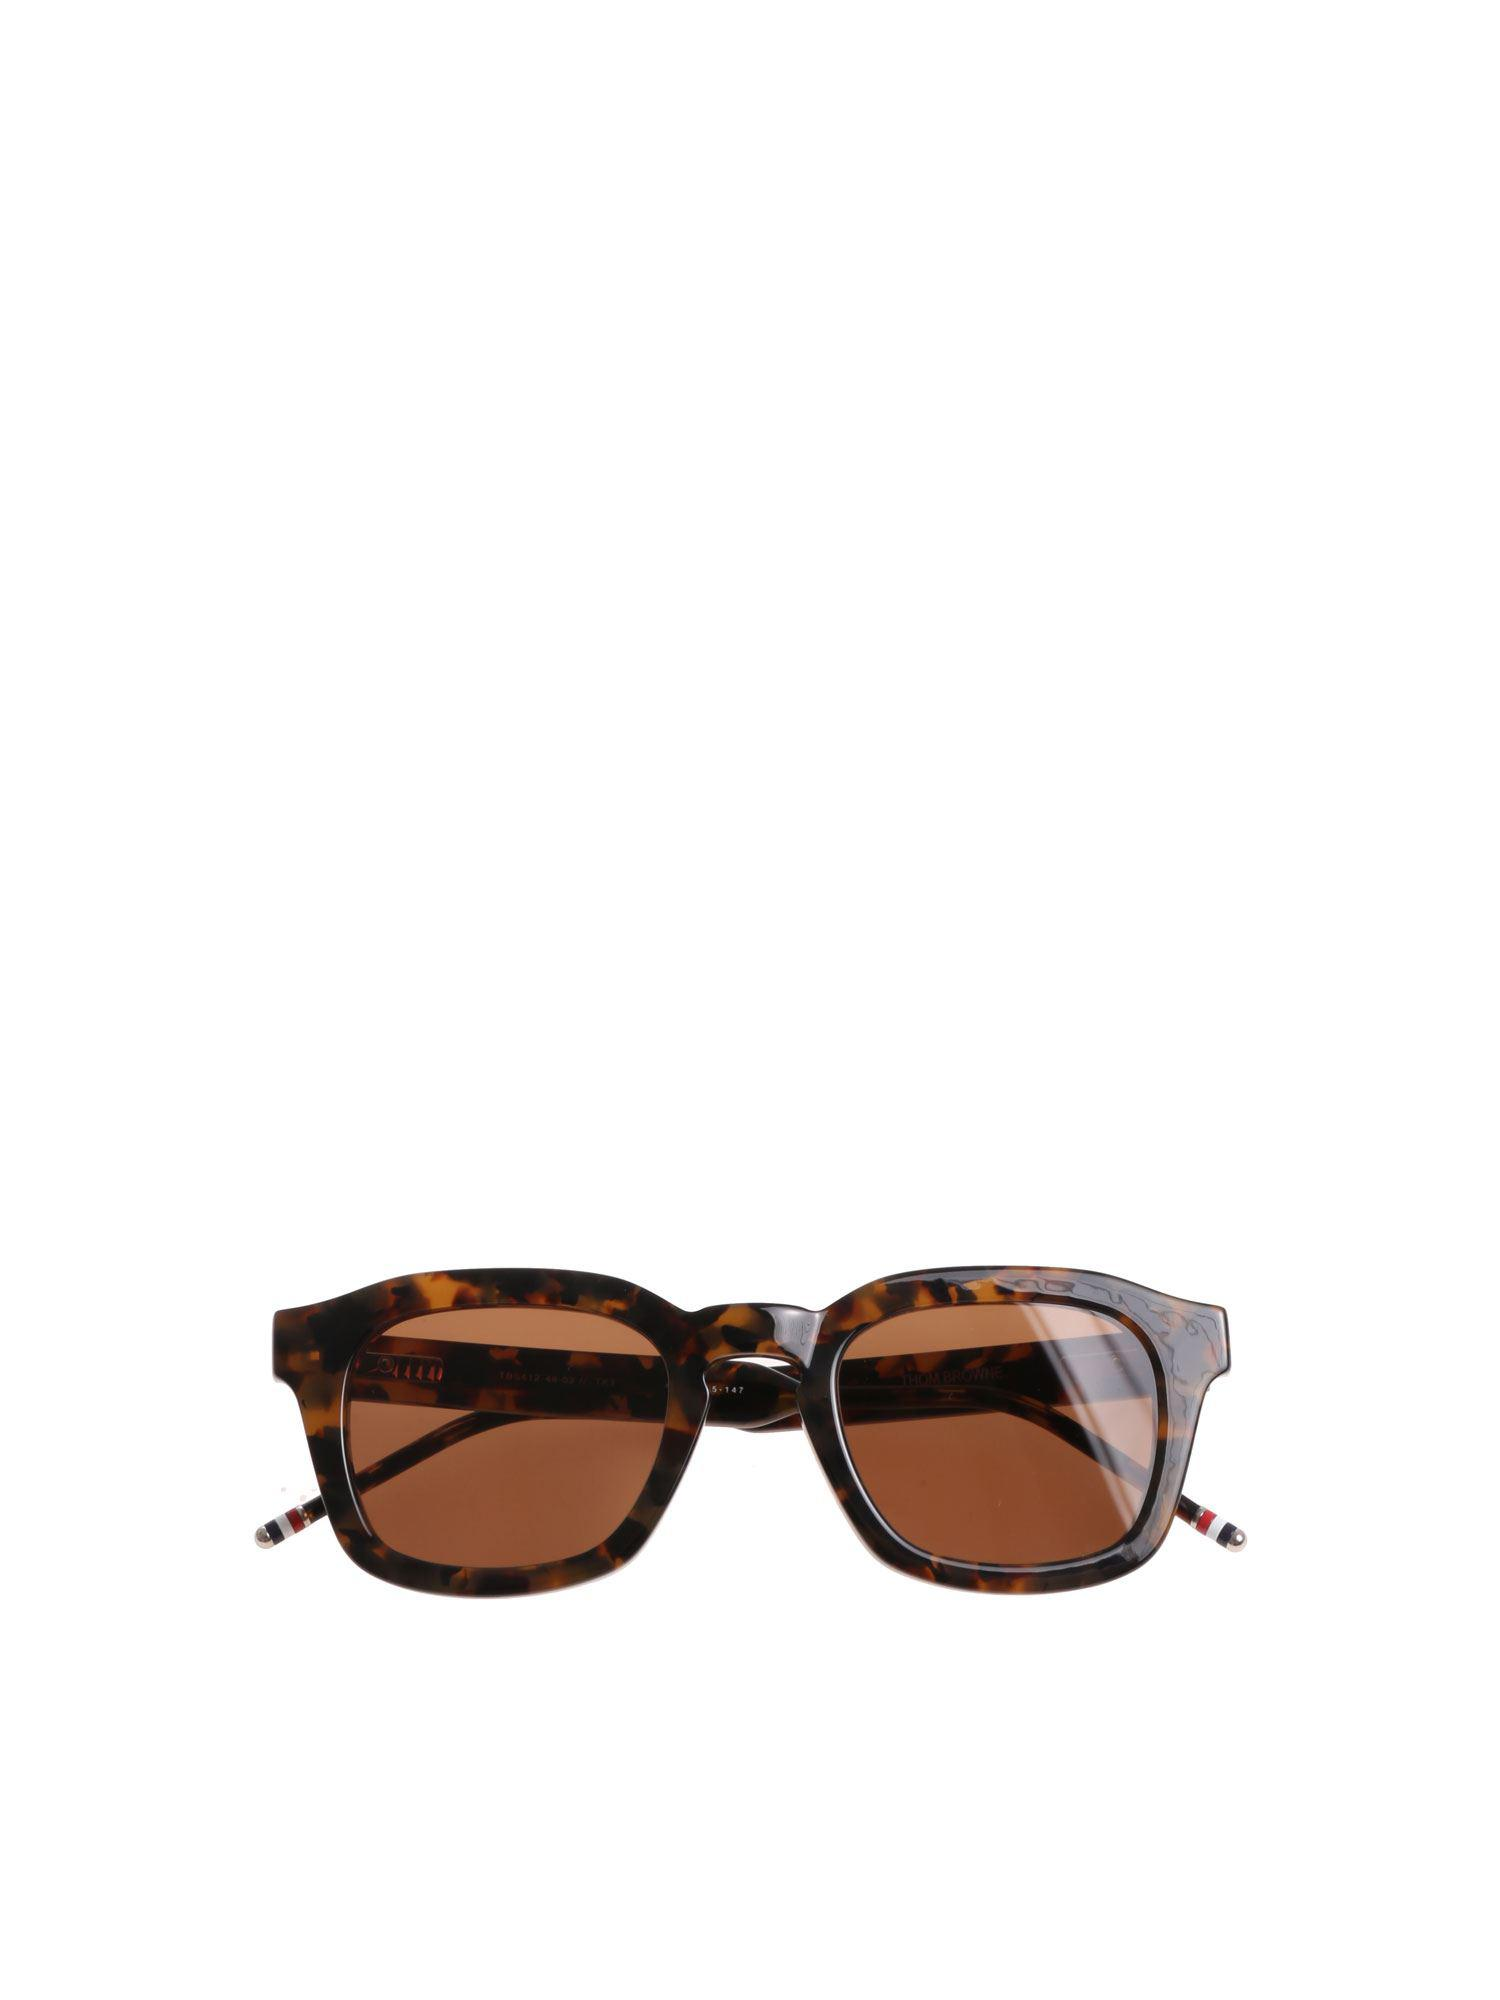 4c74e6d5d23 Thom Browne Brown Animalier Sunglasses in Brown for Men - Lyst